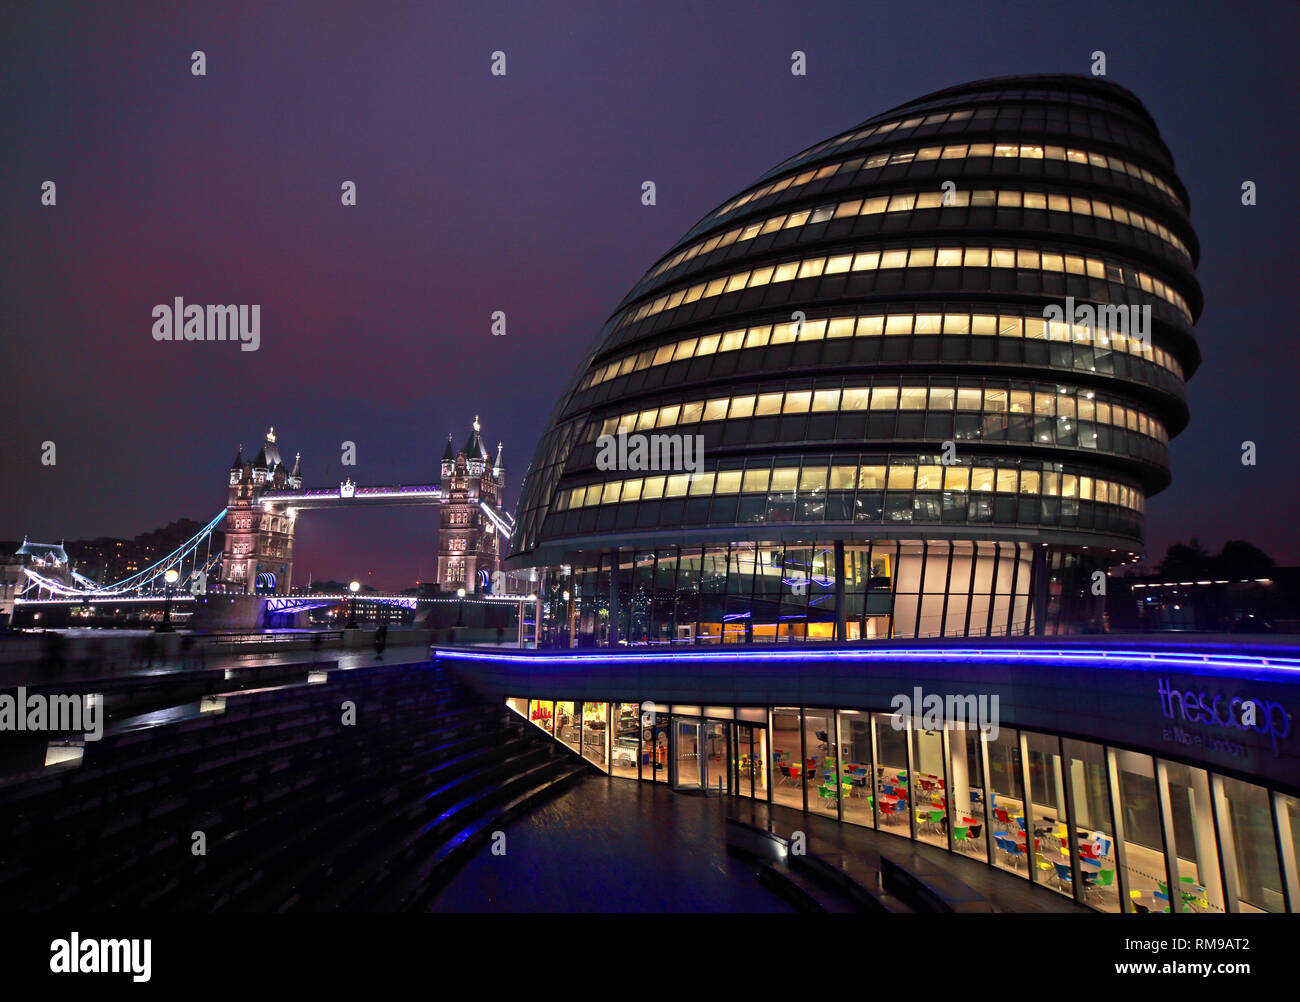 London City Hall in the evening, The Queen's Walk, London, South East England,UK, SE1 2AA - Stock Image